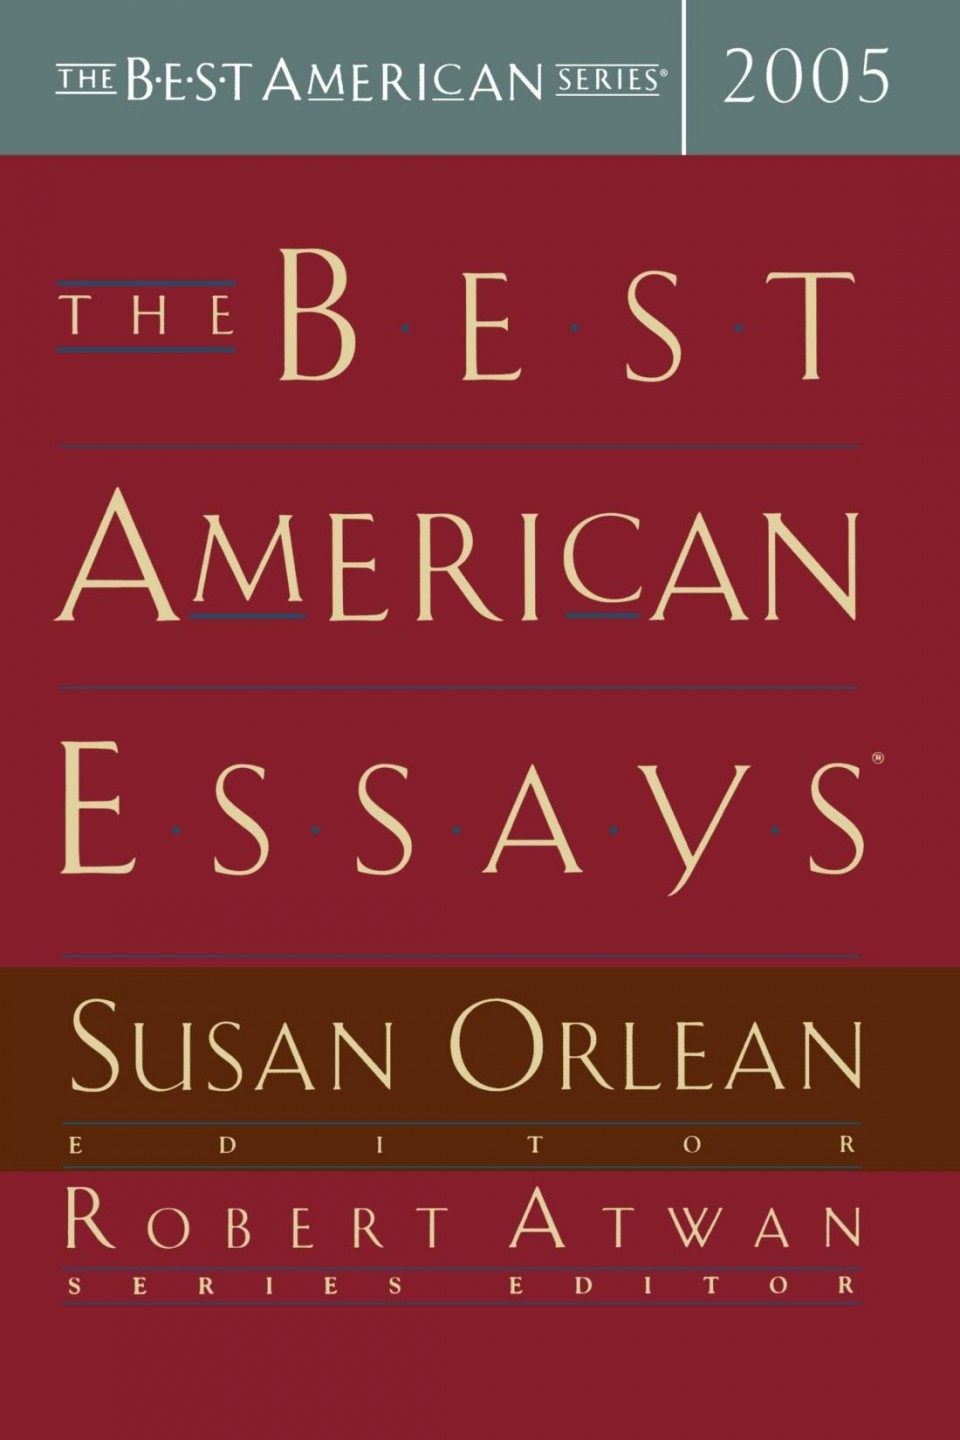 009 Essay Example 61eba7rjfxl The Best American Wonderful Essays 2018 Pdf 2017 Table Of Contents 2015 Free 960